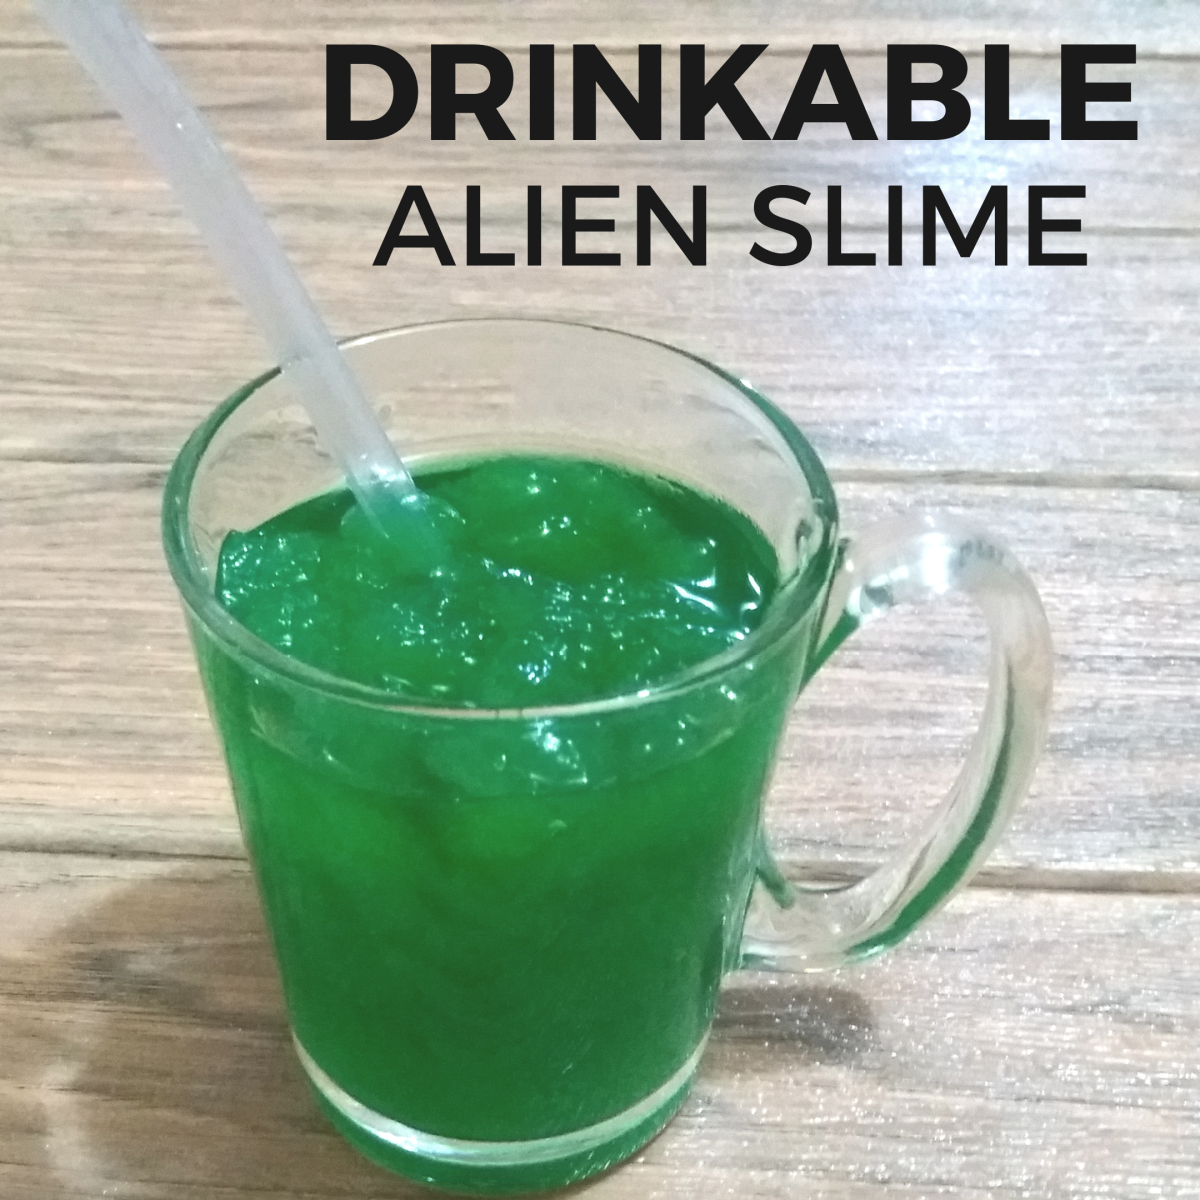 How to Make Drinkable Alien Slime: A Toy Story-Inspired Drink